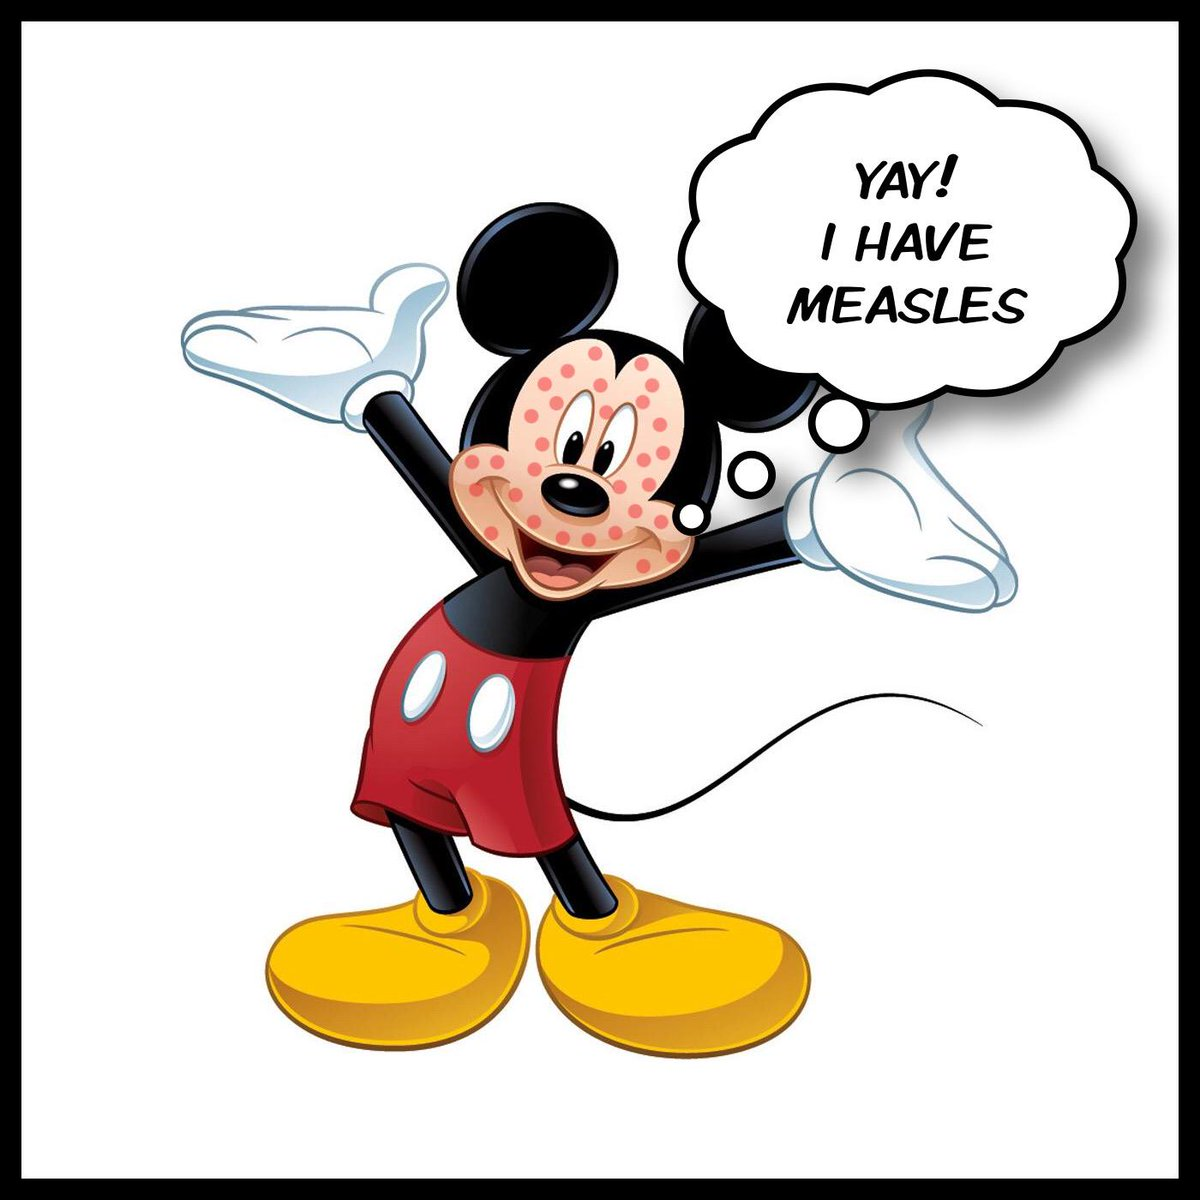 Yay clipart mickey mouse. Jon chusid on twitter